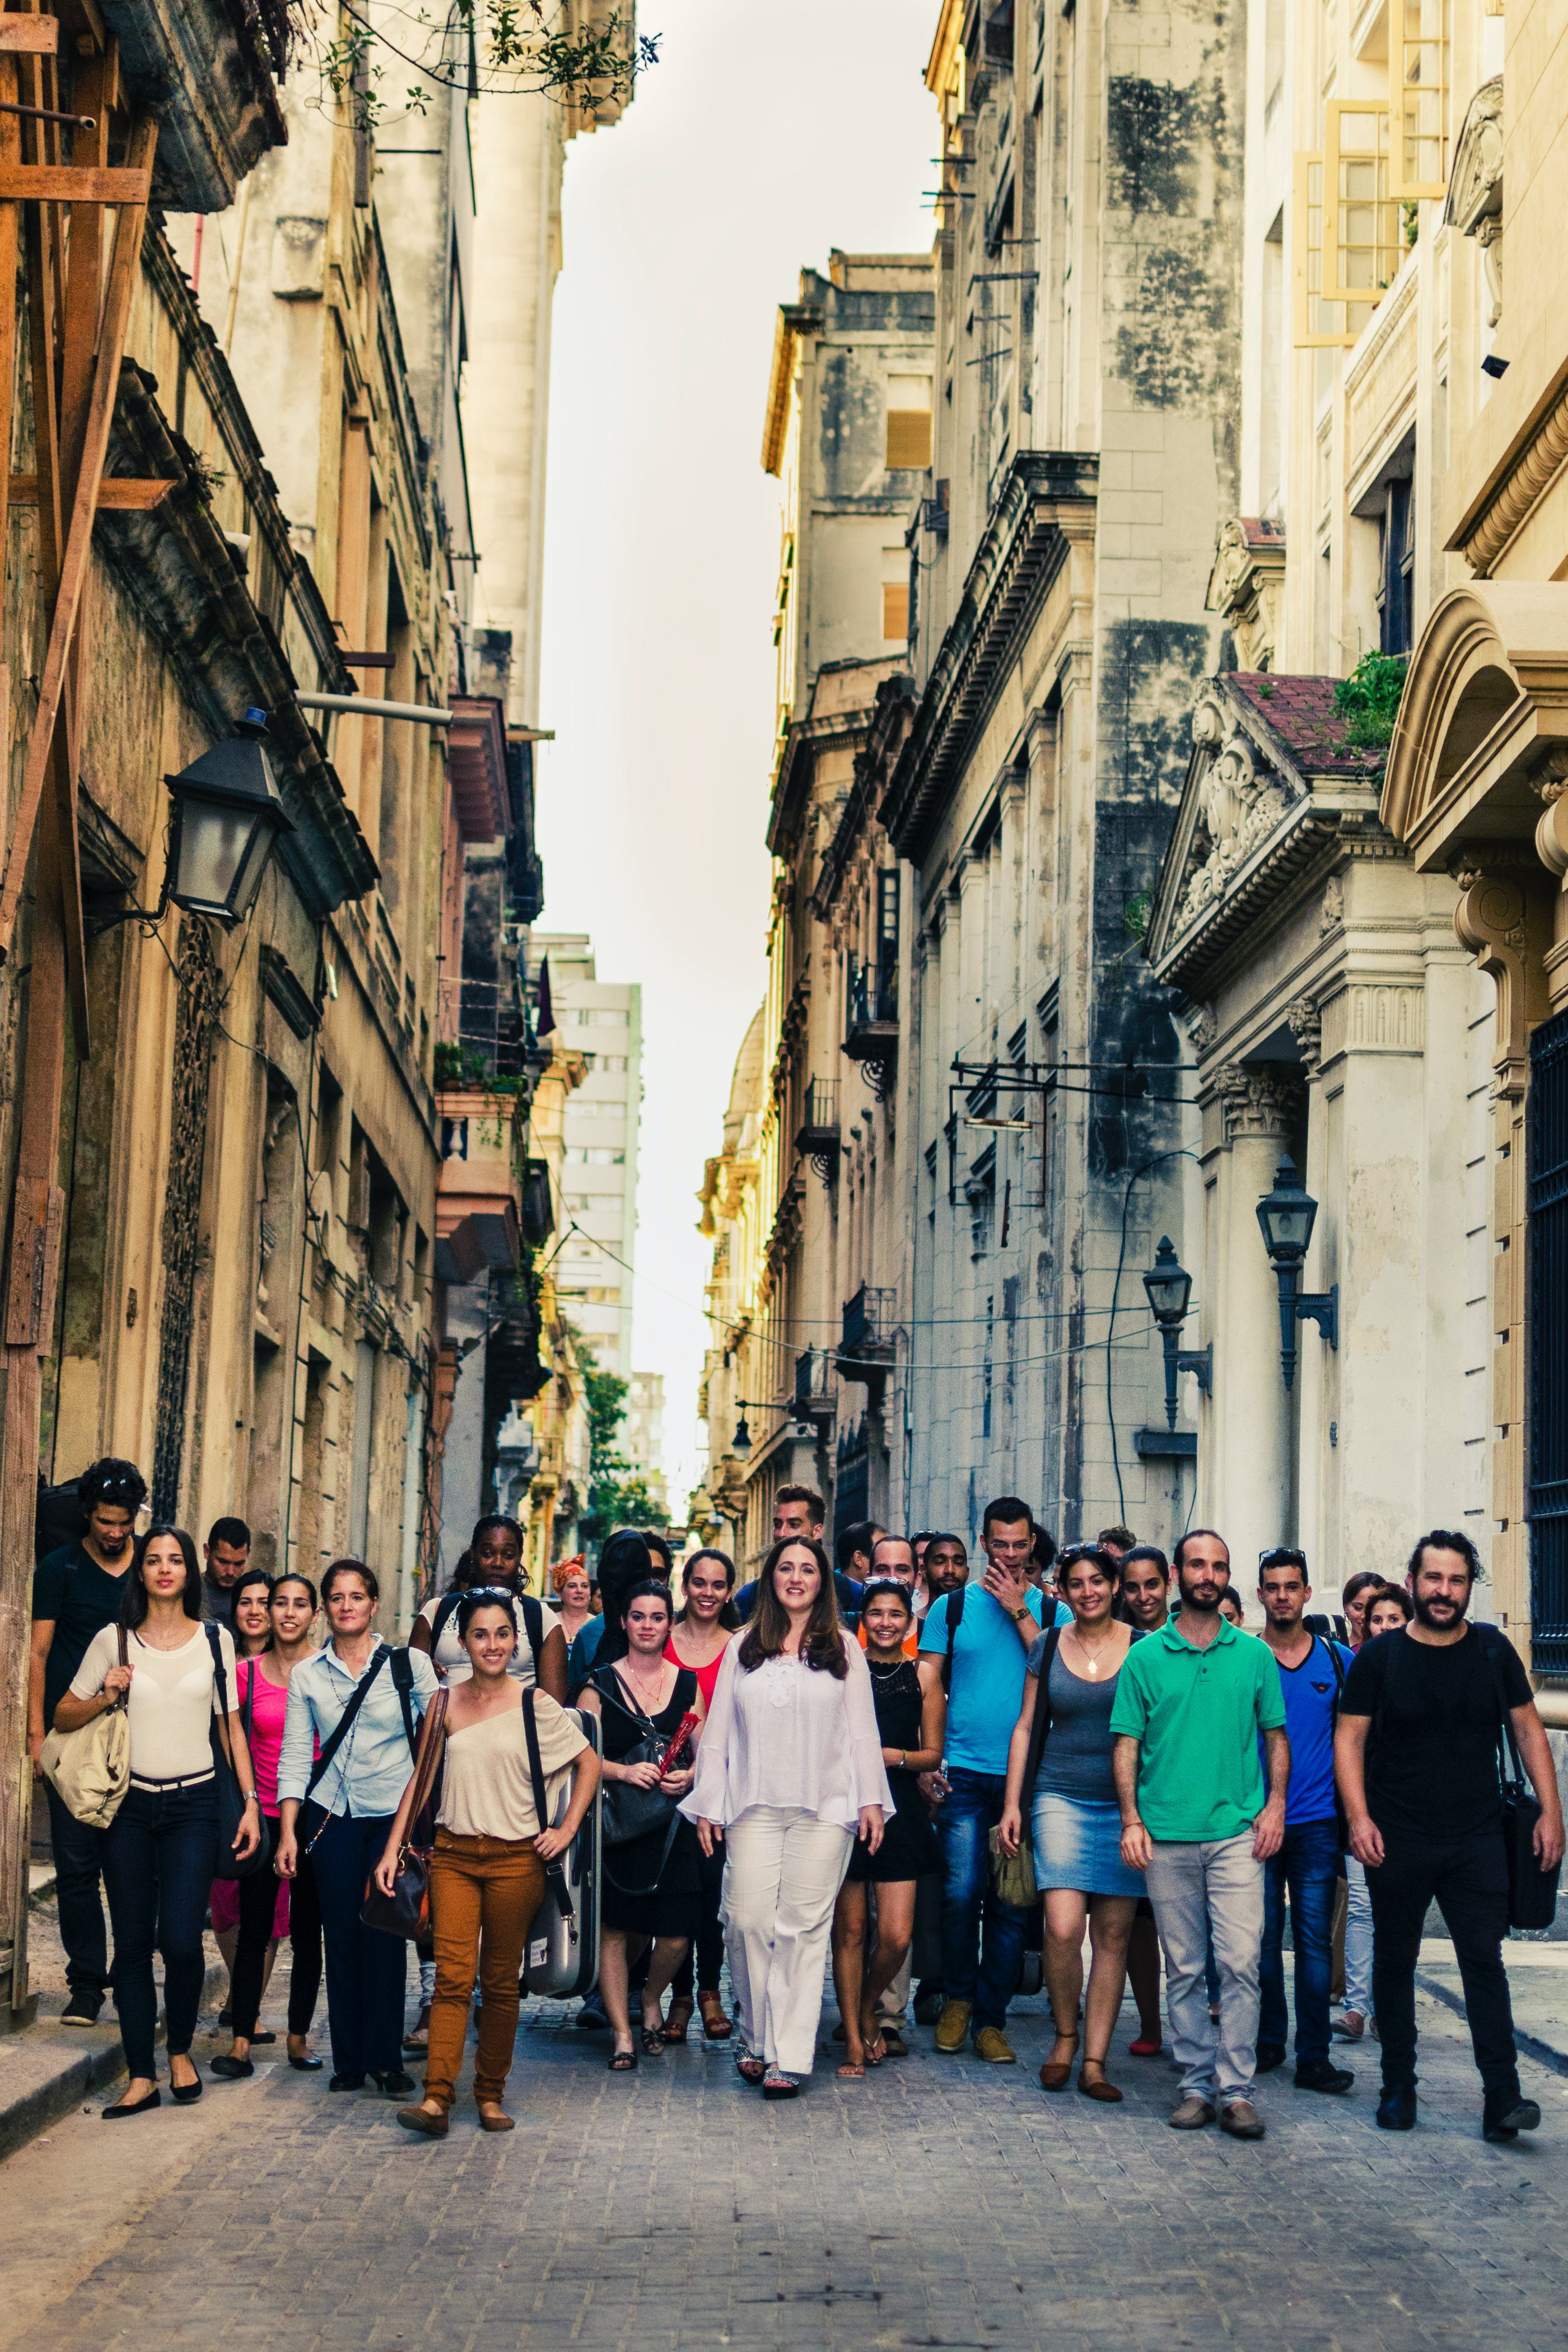 <p>After Simone Dinnerstein&#39;s delightful first experience playing with Havana Lyceum Orchestra in 2015, she returned to Cuba the following year to record an album of Mozart concertos with the young ensemble. Photo: &copy; 2017 Arianna Dominguez</p>